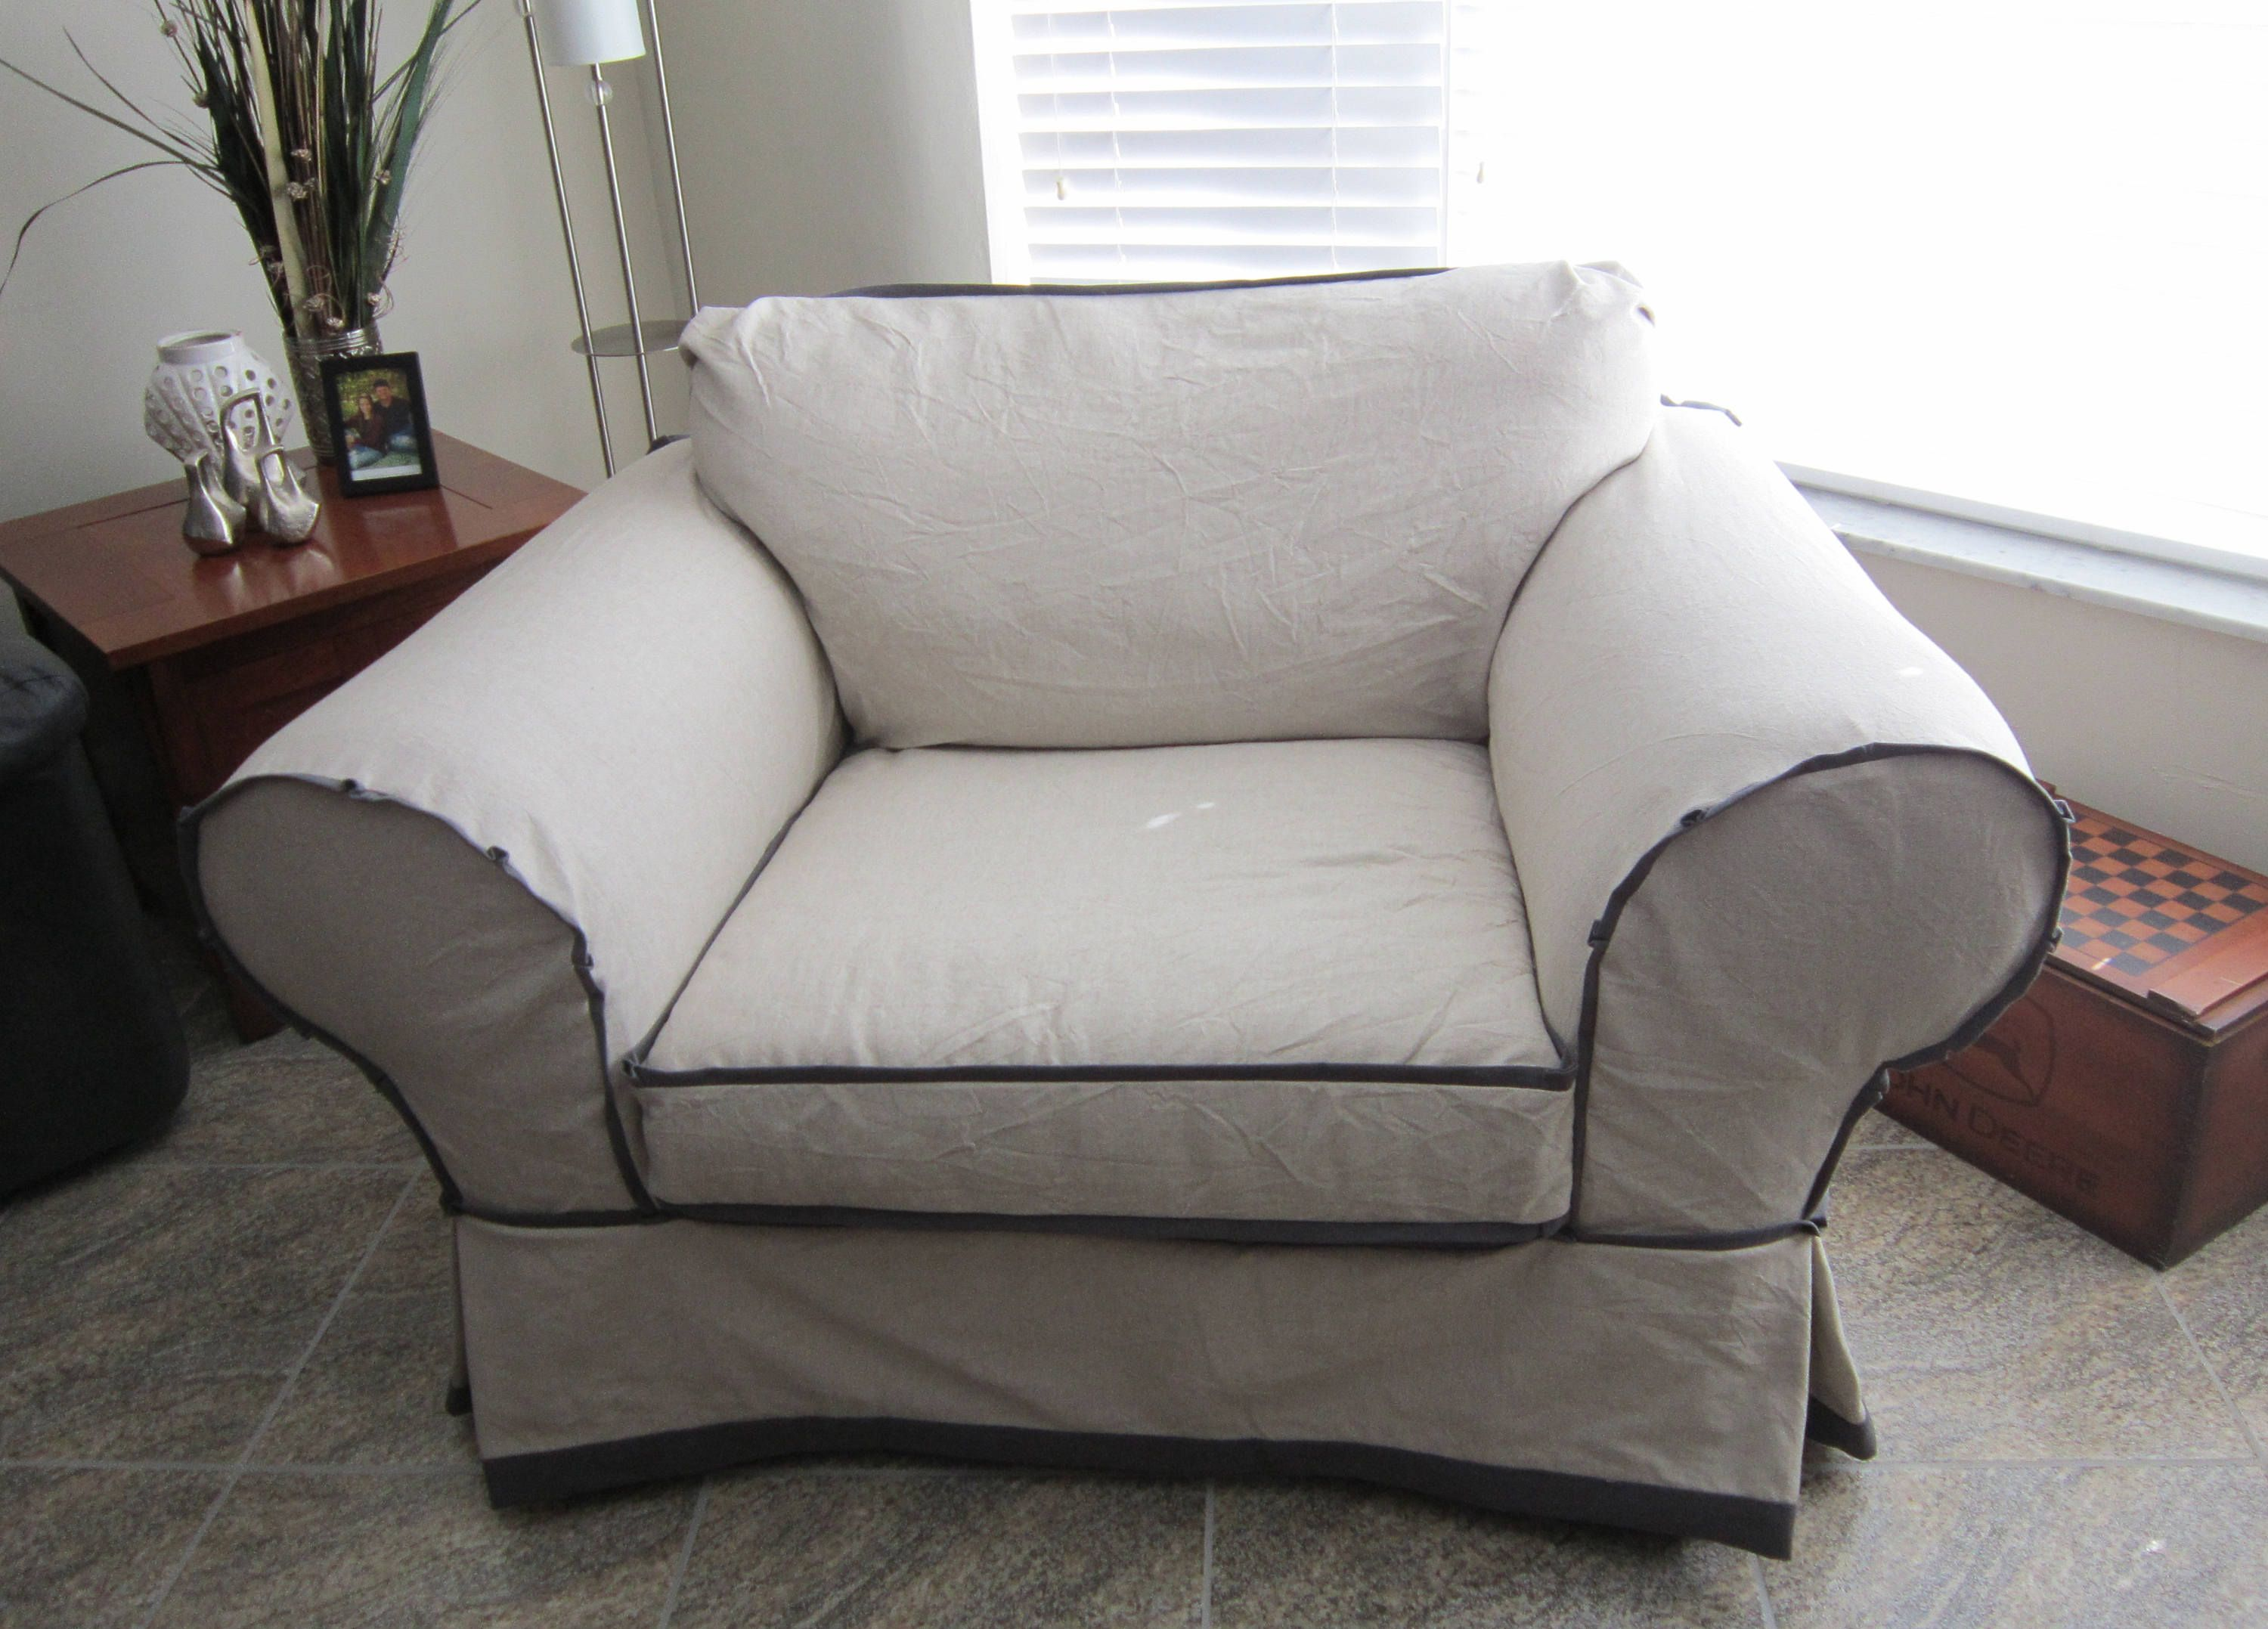 Chair 1 2 With No Cushions Custom Slipcover Etsy Chair And A Half Slipcovers Custom Slipcovers